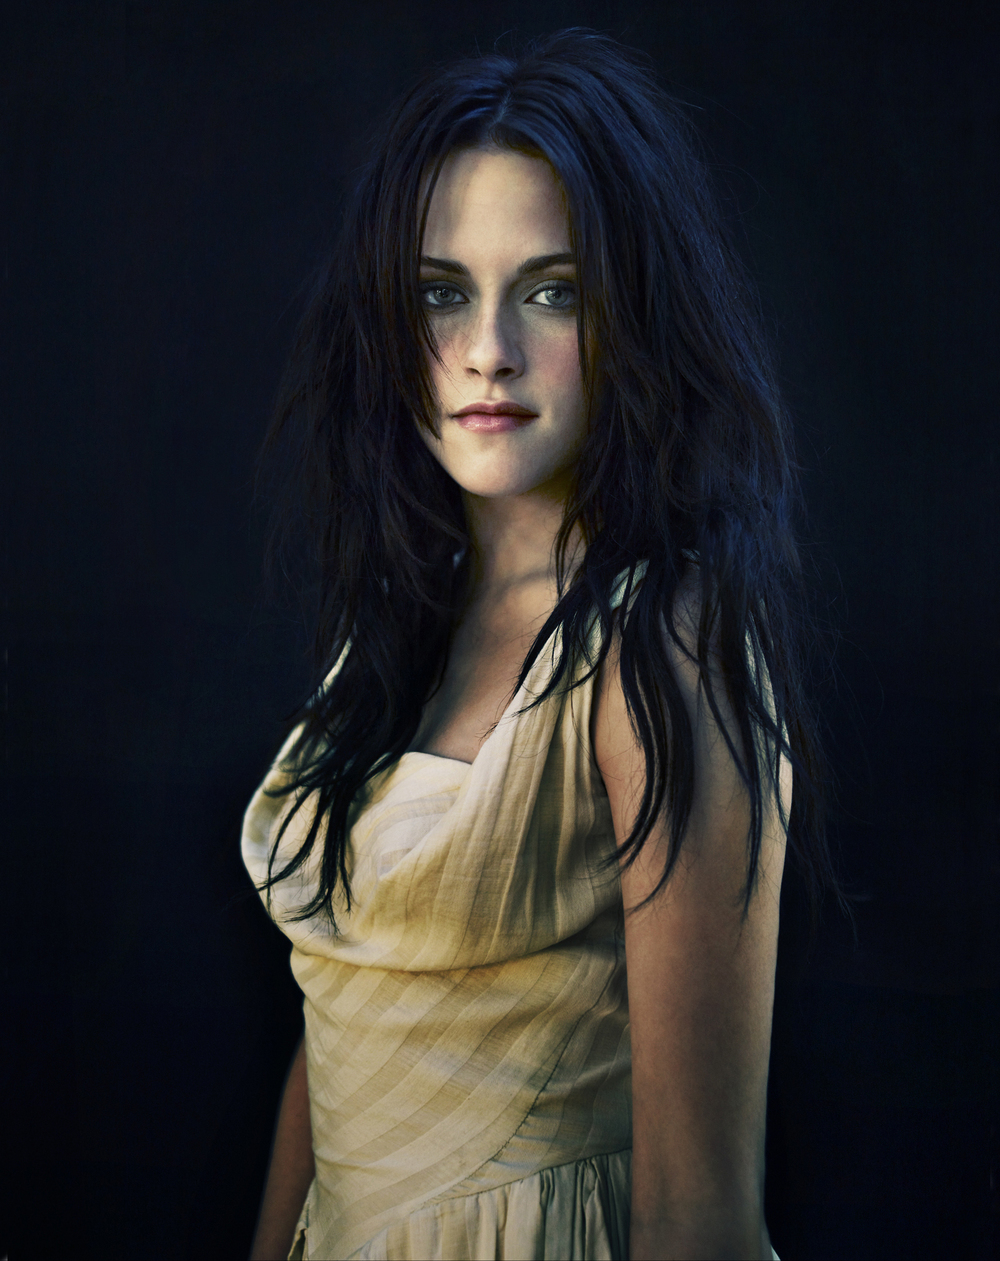 Kristen Stewart - Canyon Country, CA